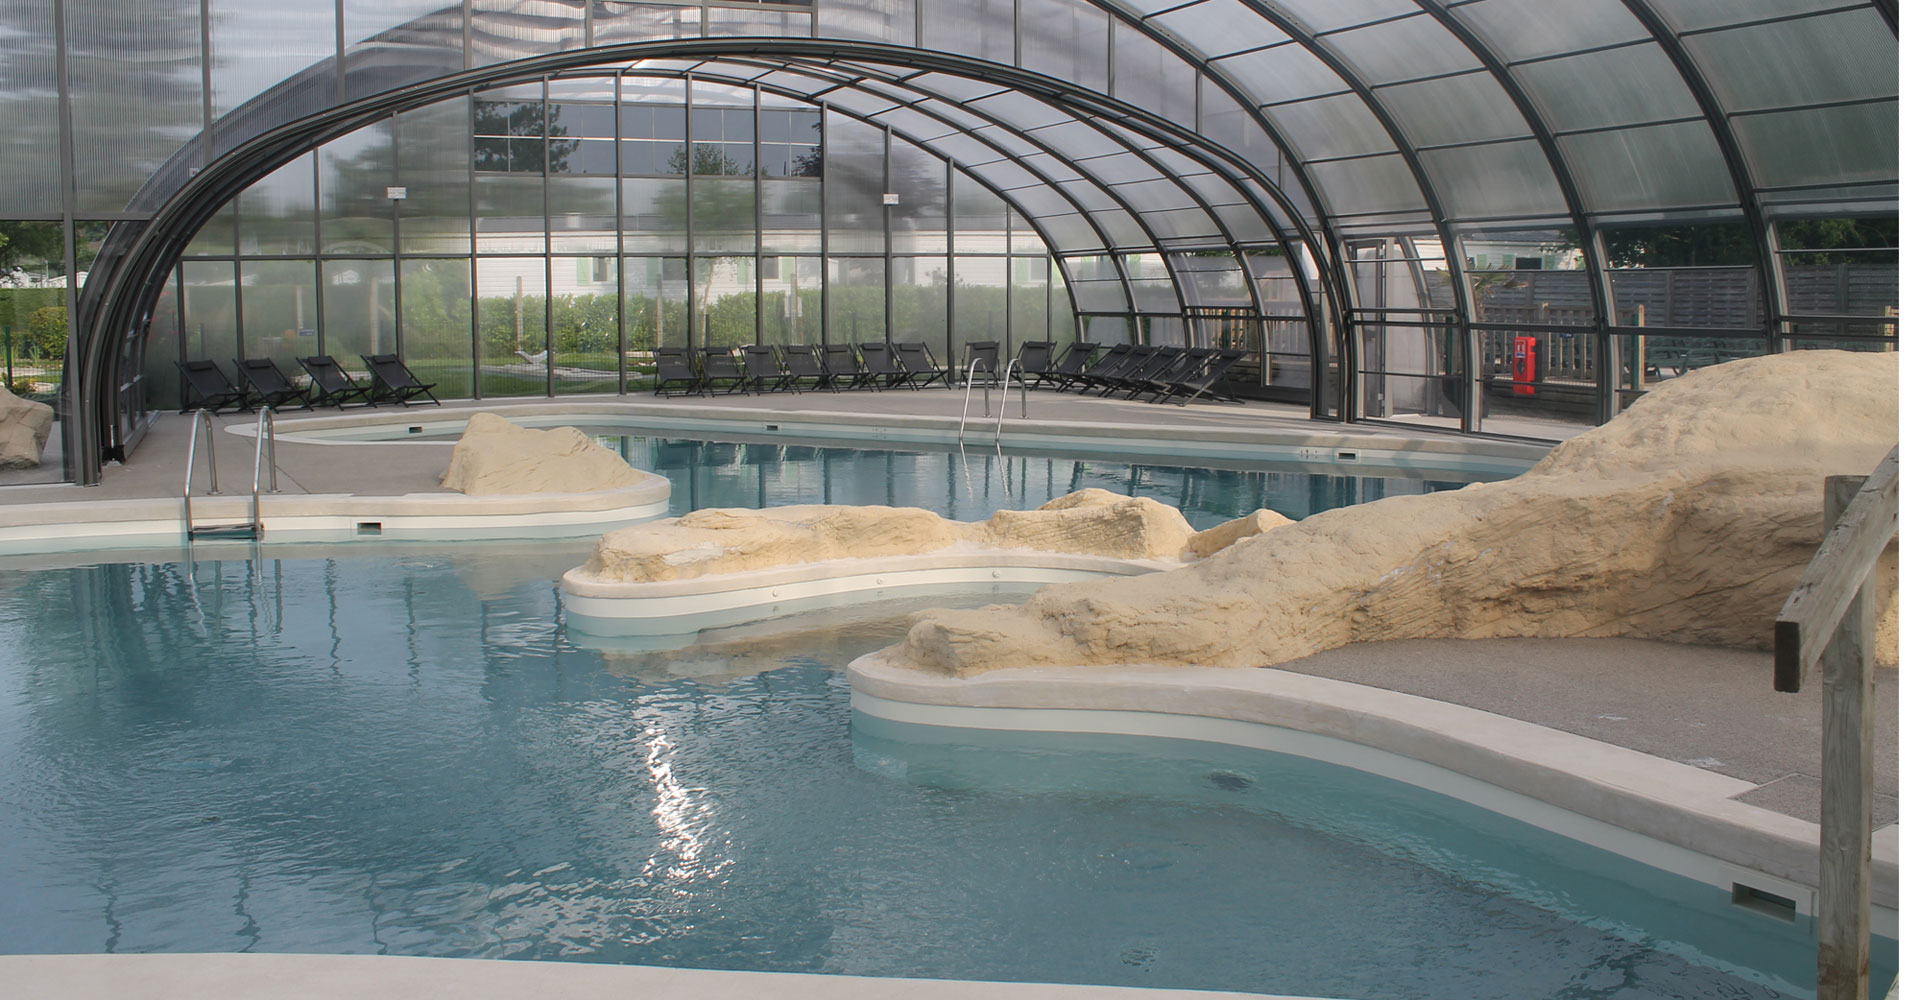 Camping Quend, Somme | ᐃ Des Roses | France pour Camping Quend Plage Avec Piscine